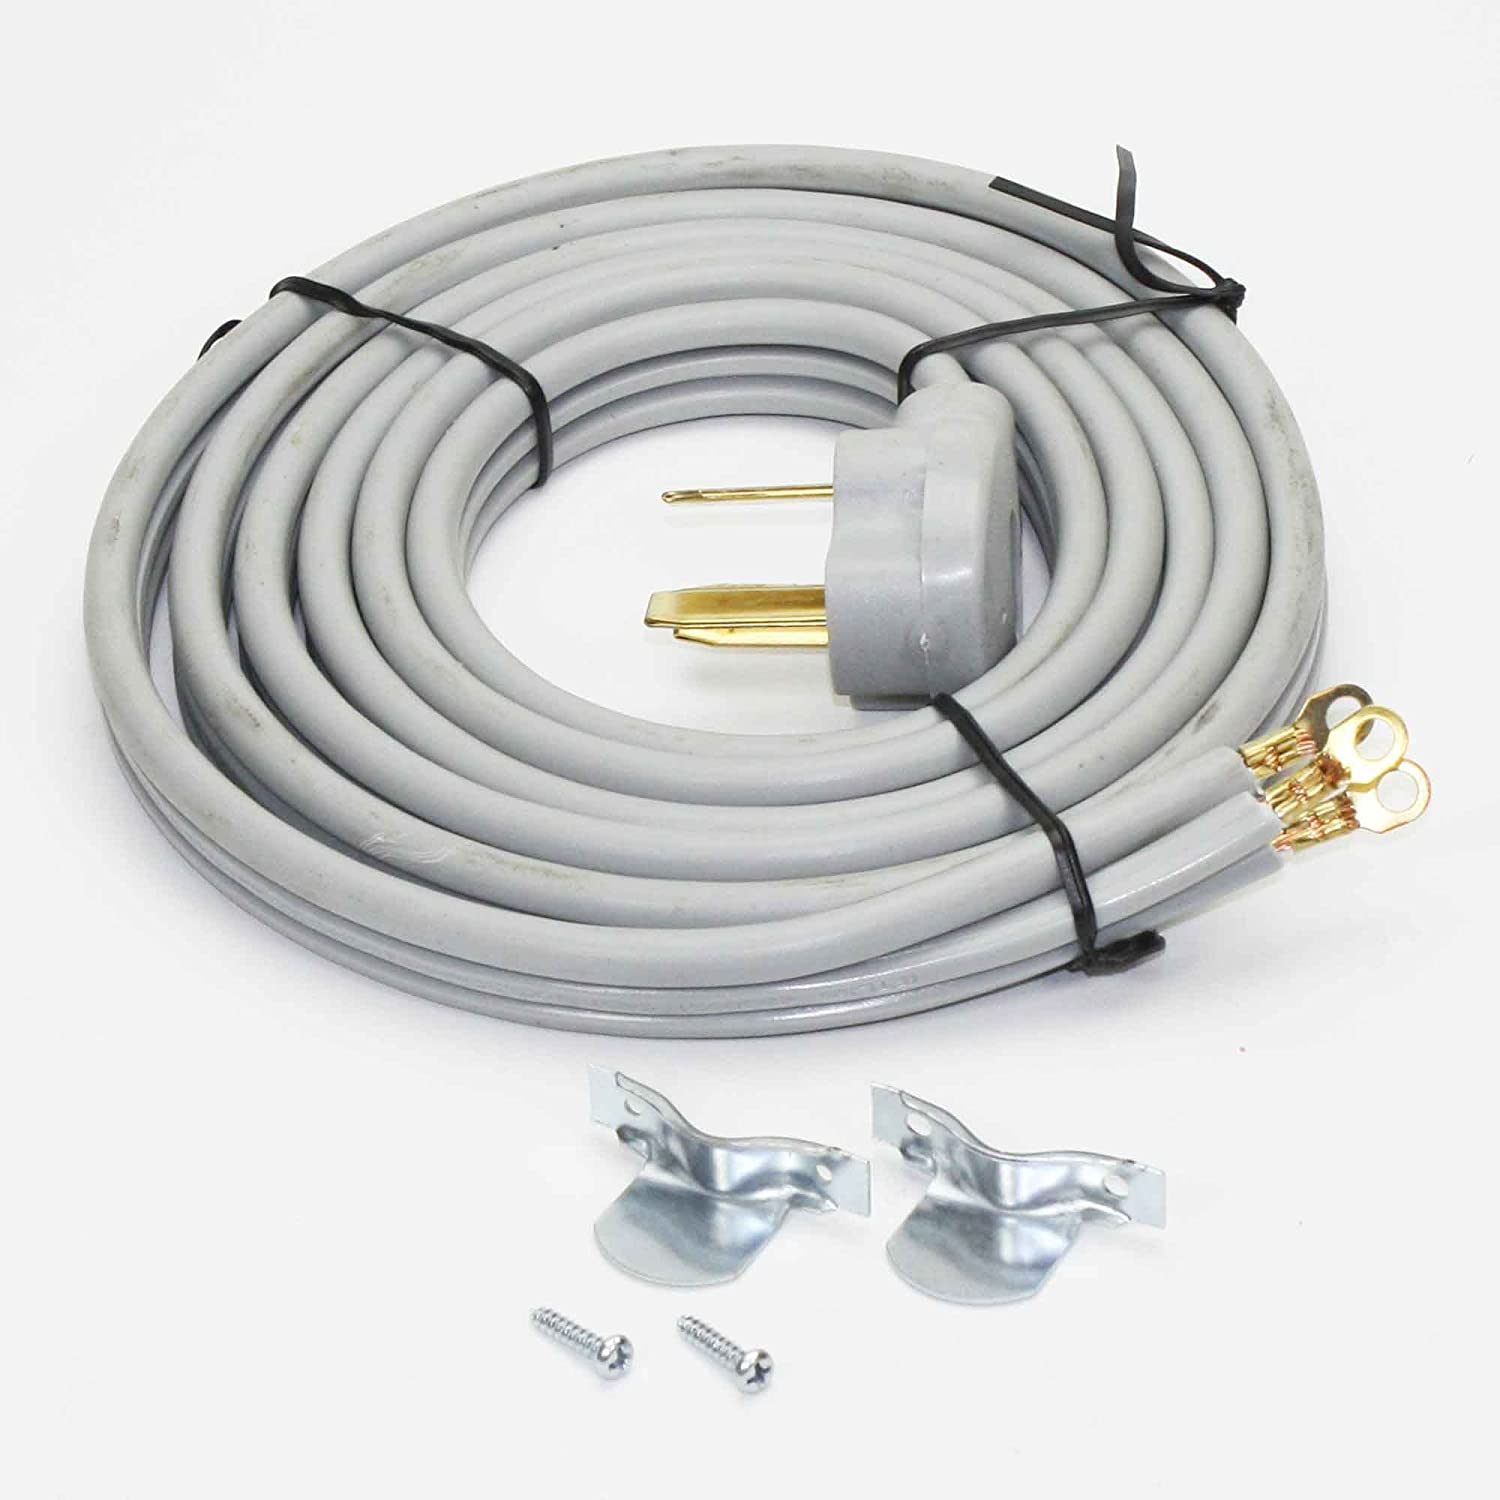 RC3-40-10 Range Stove Oven Power Cord | 3 Wire | 10 Feet Long | 40A 220V